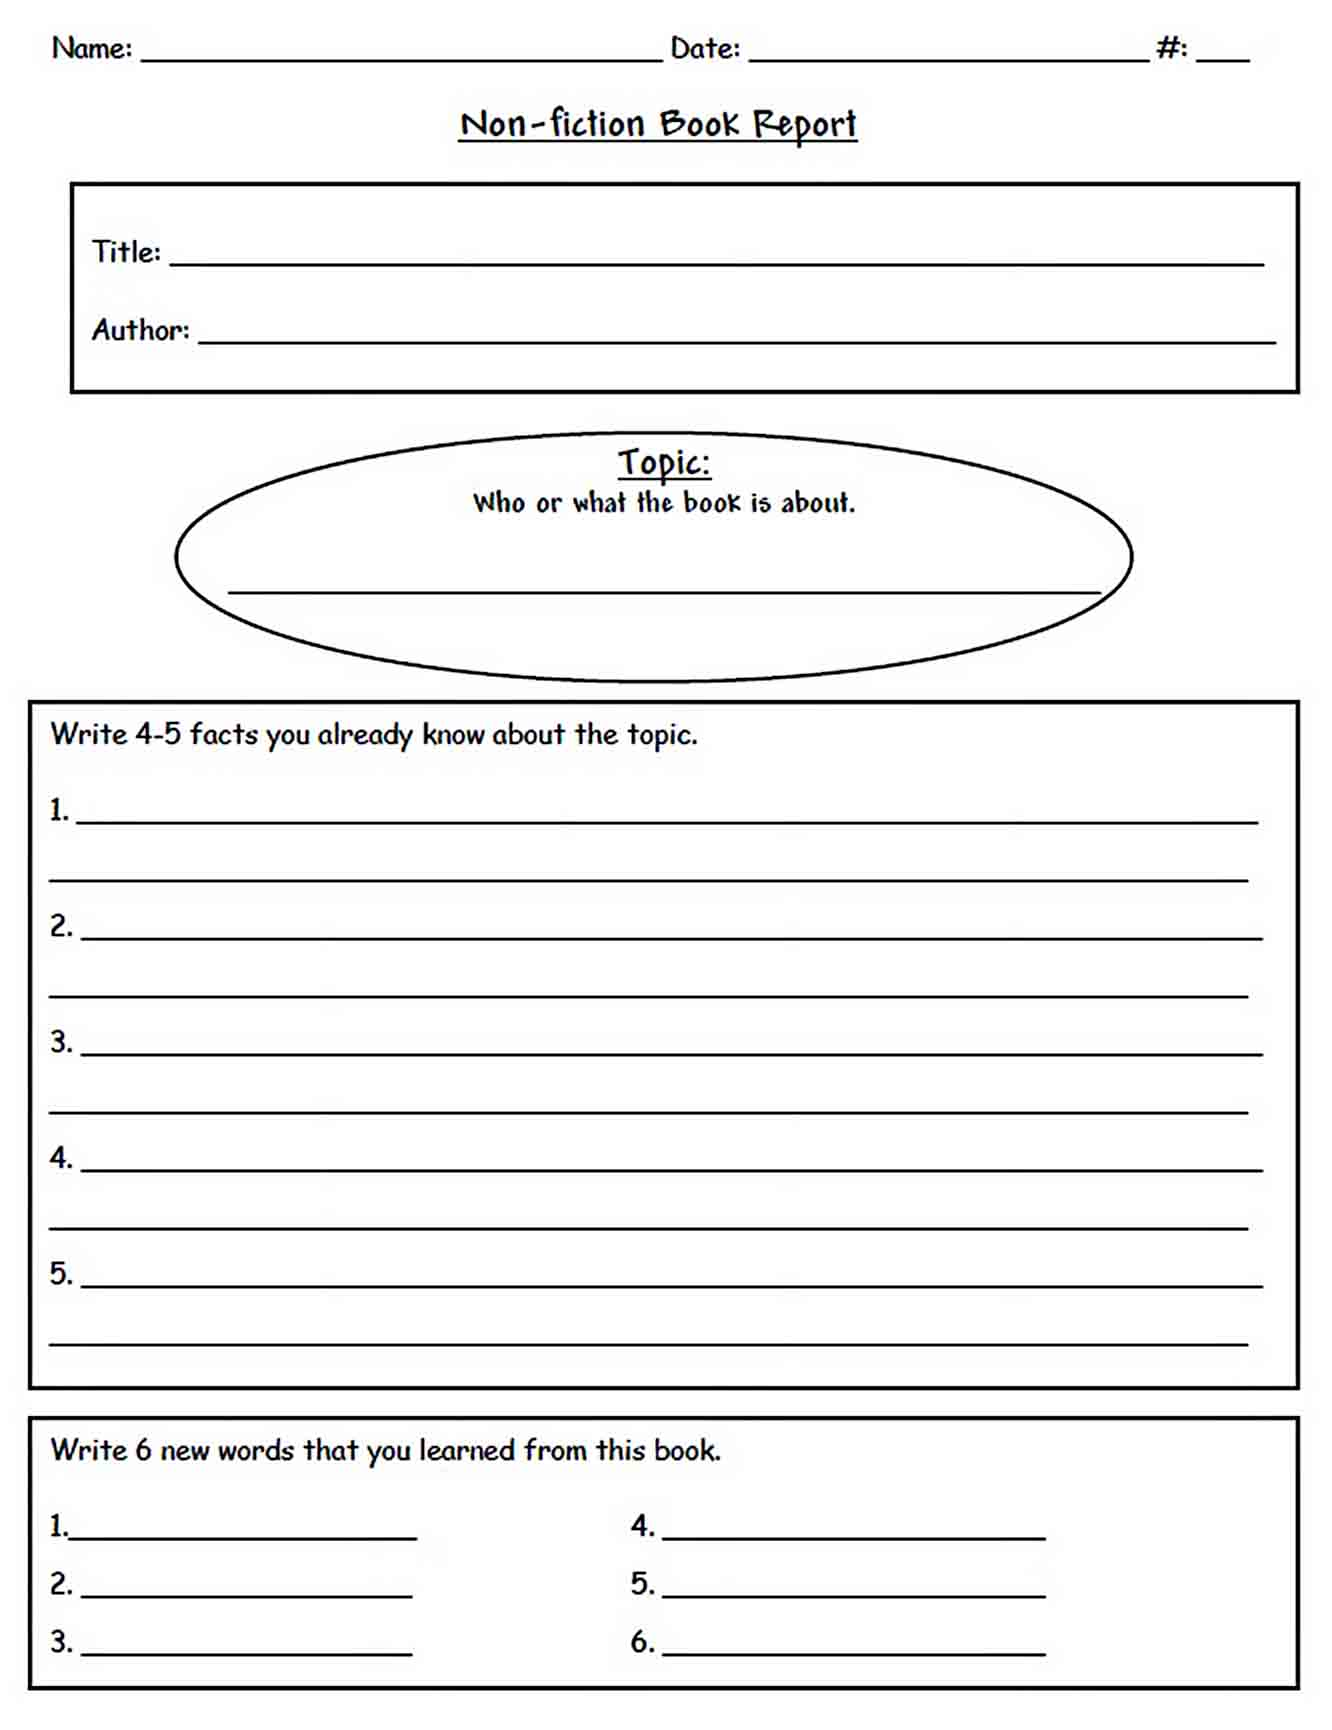 Templates Non Fiction Book Report Format